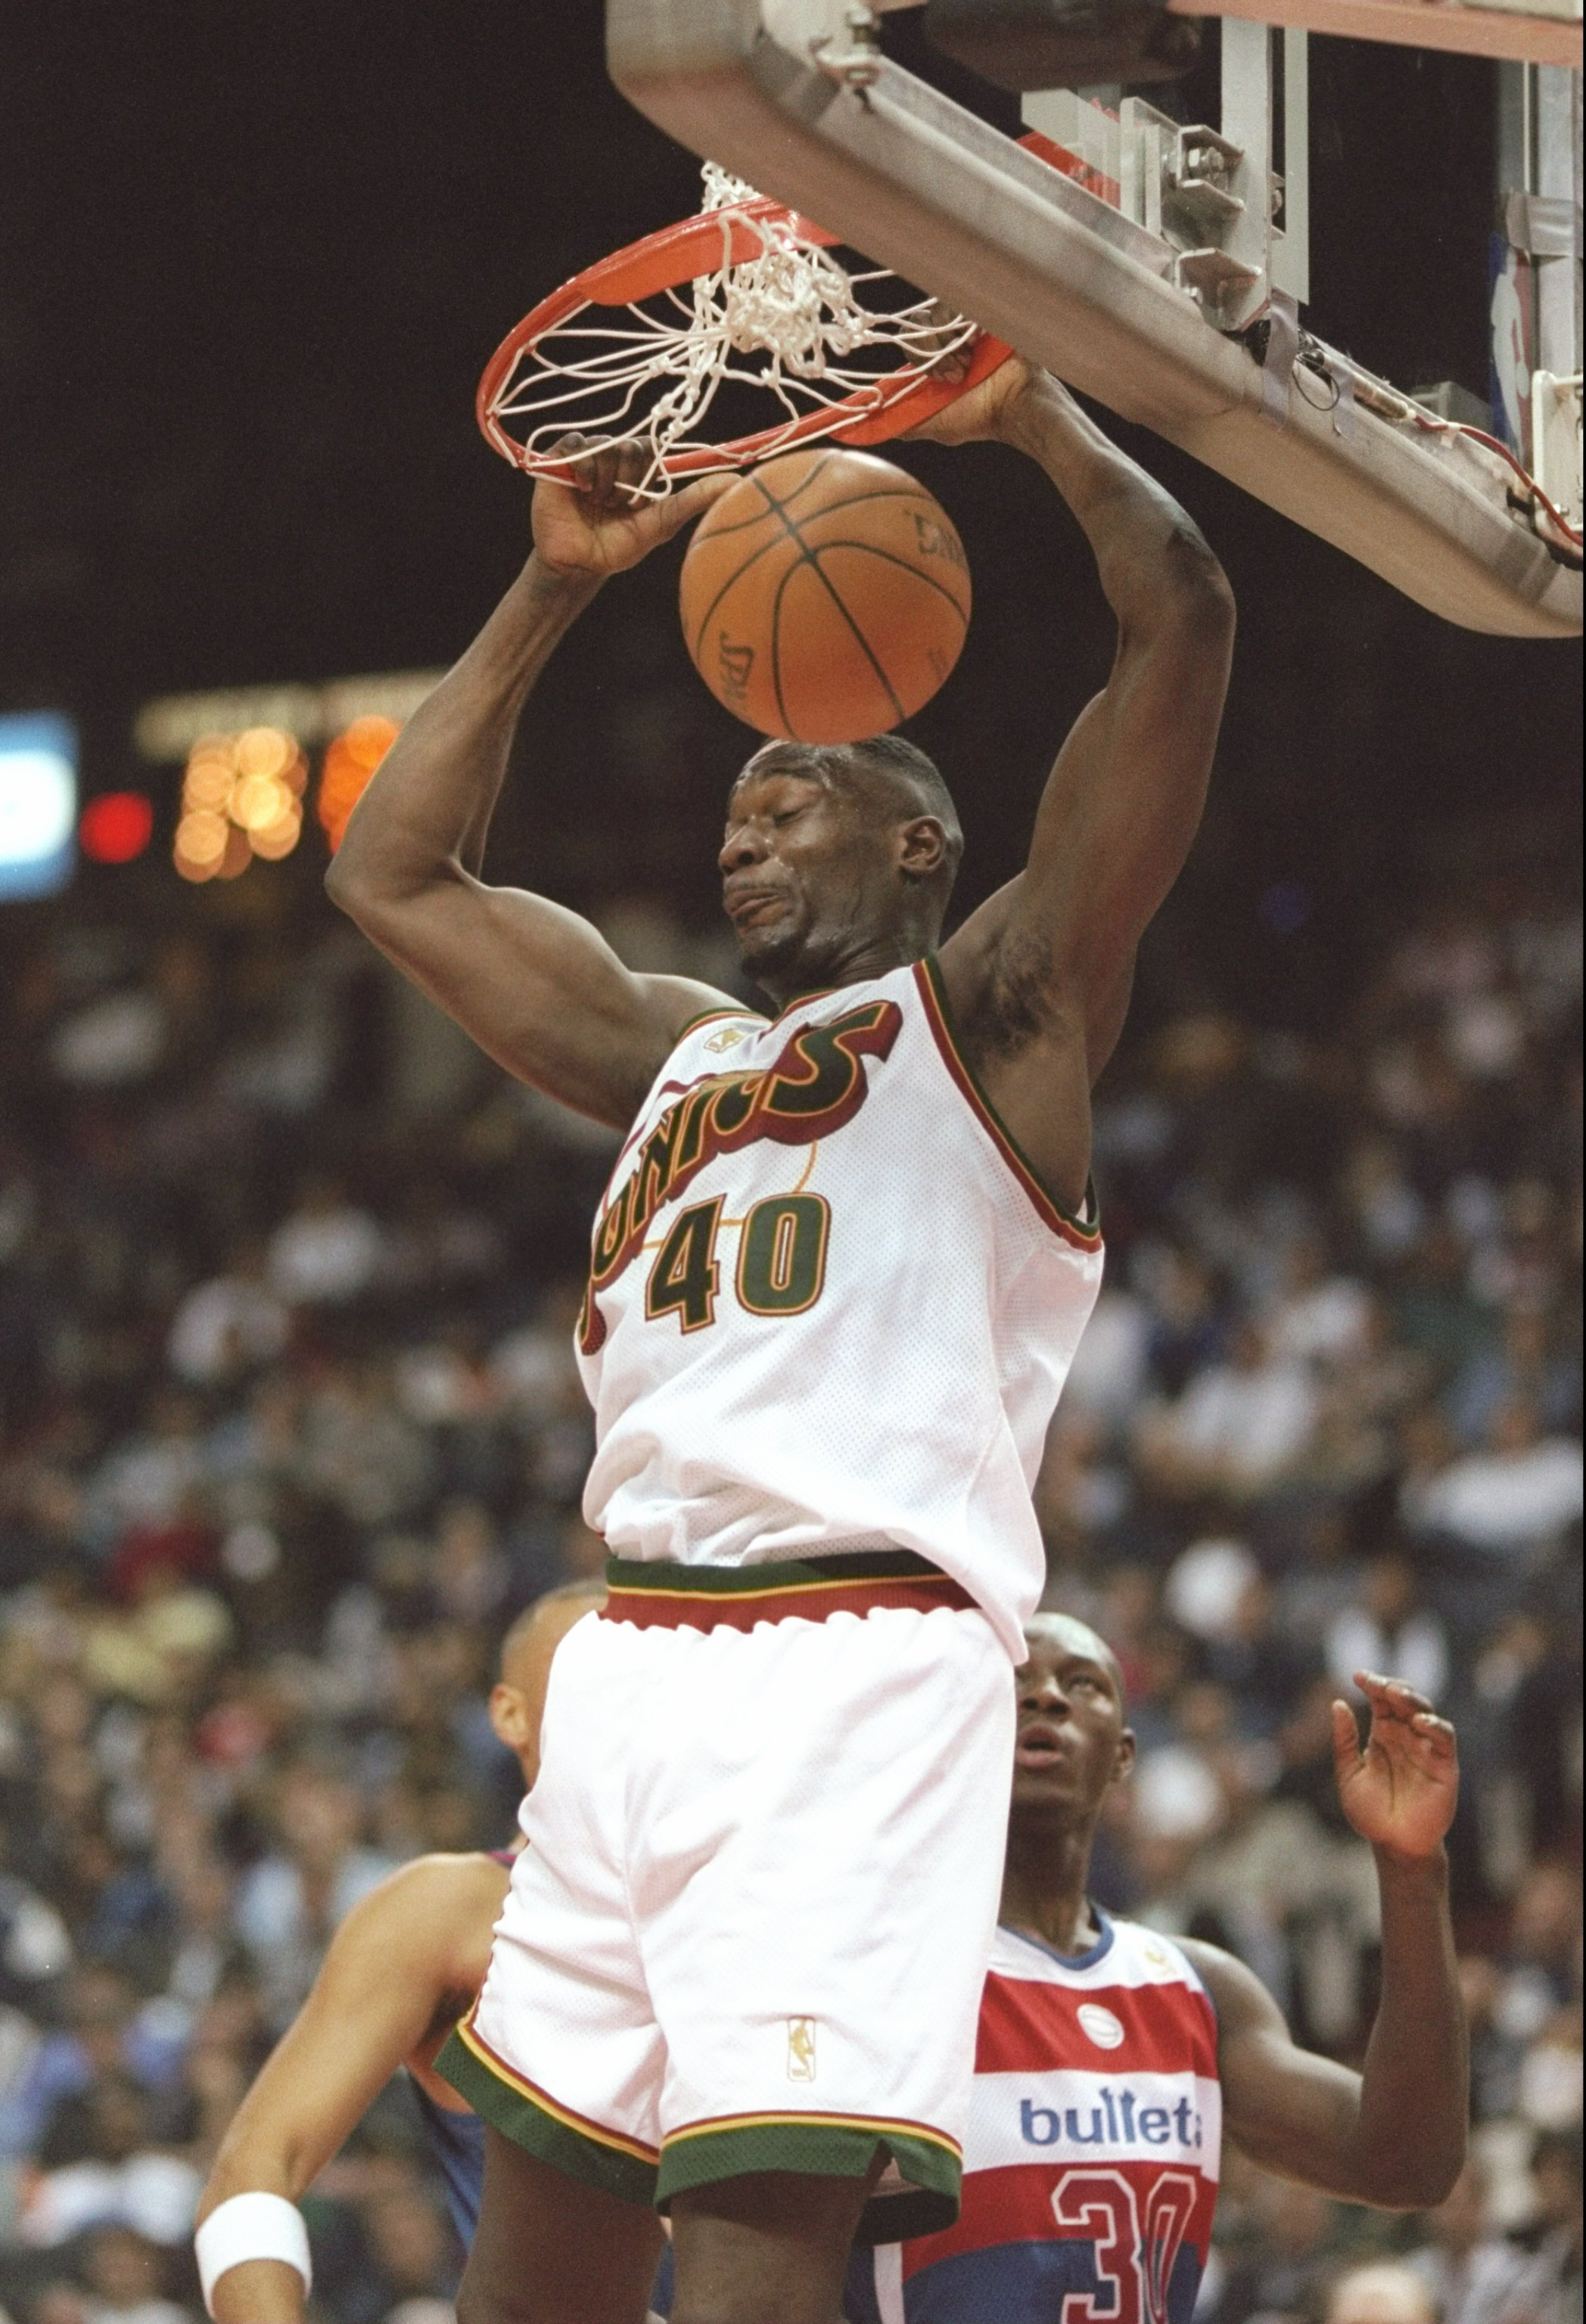 a4d9f0a7166a 20 Nov 1996  Forward Shawn Kemp of the Seattle Supersonics slam dunks the  ball during